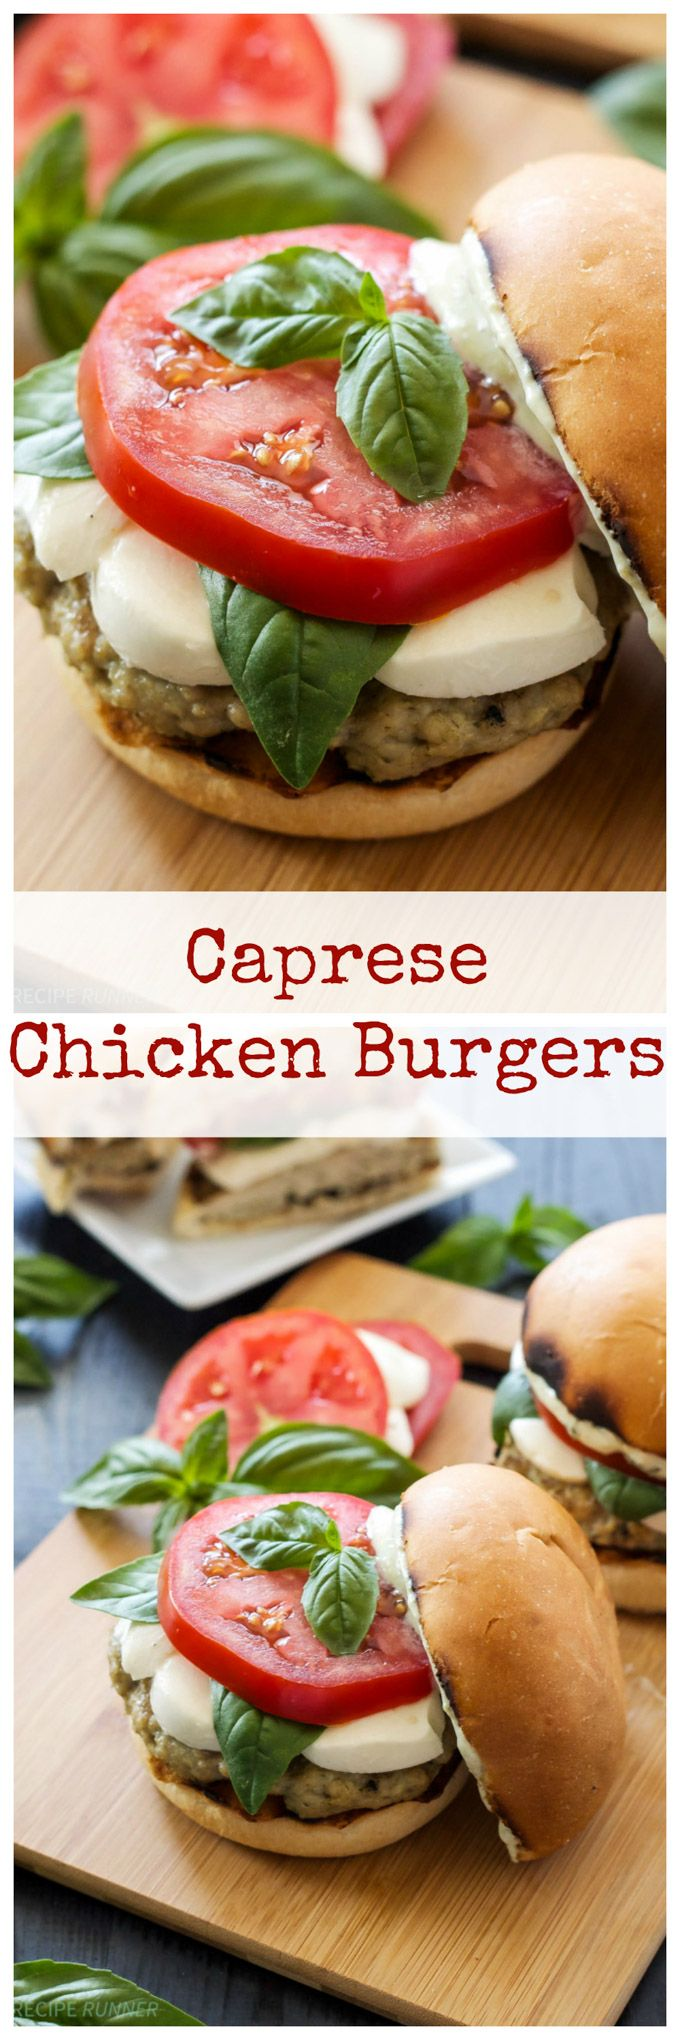 Caprese Chicken Burgers |Everything you love about caprese salad in burger form! You've gotta try these!